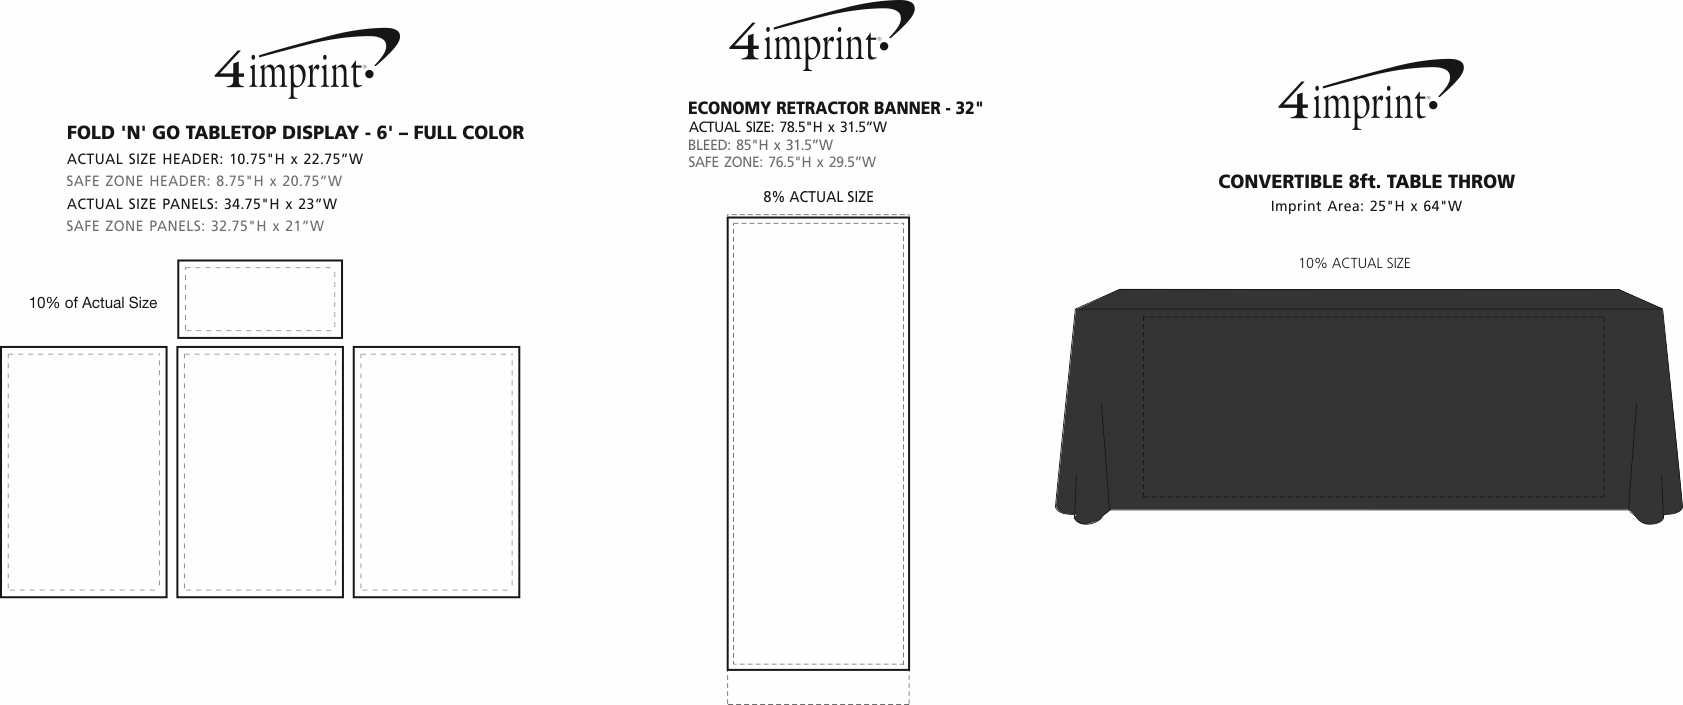 Imprint Area of Fold N Go Tabletop Display - 6' - Full Color - Kit